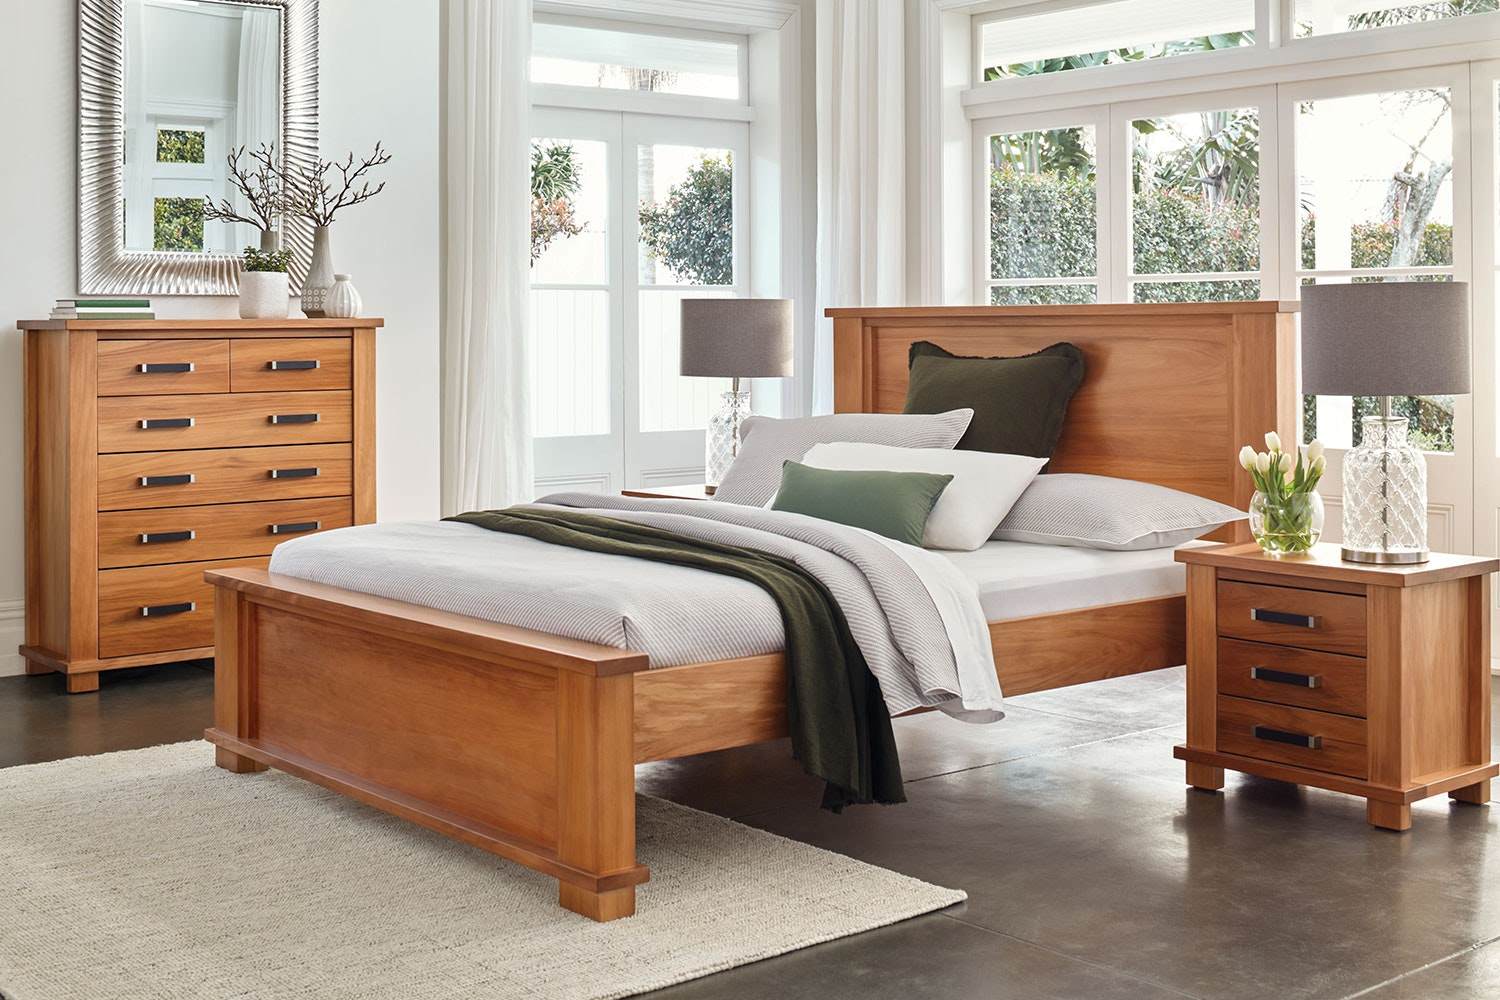 Huntsman Low Foot Super King Bed Frame by Ezirest Furniture